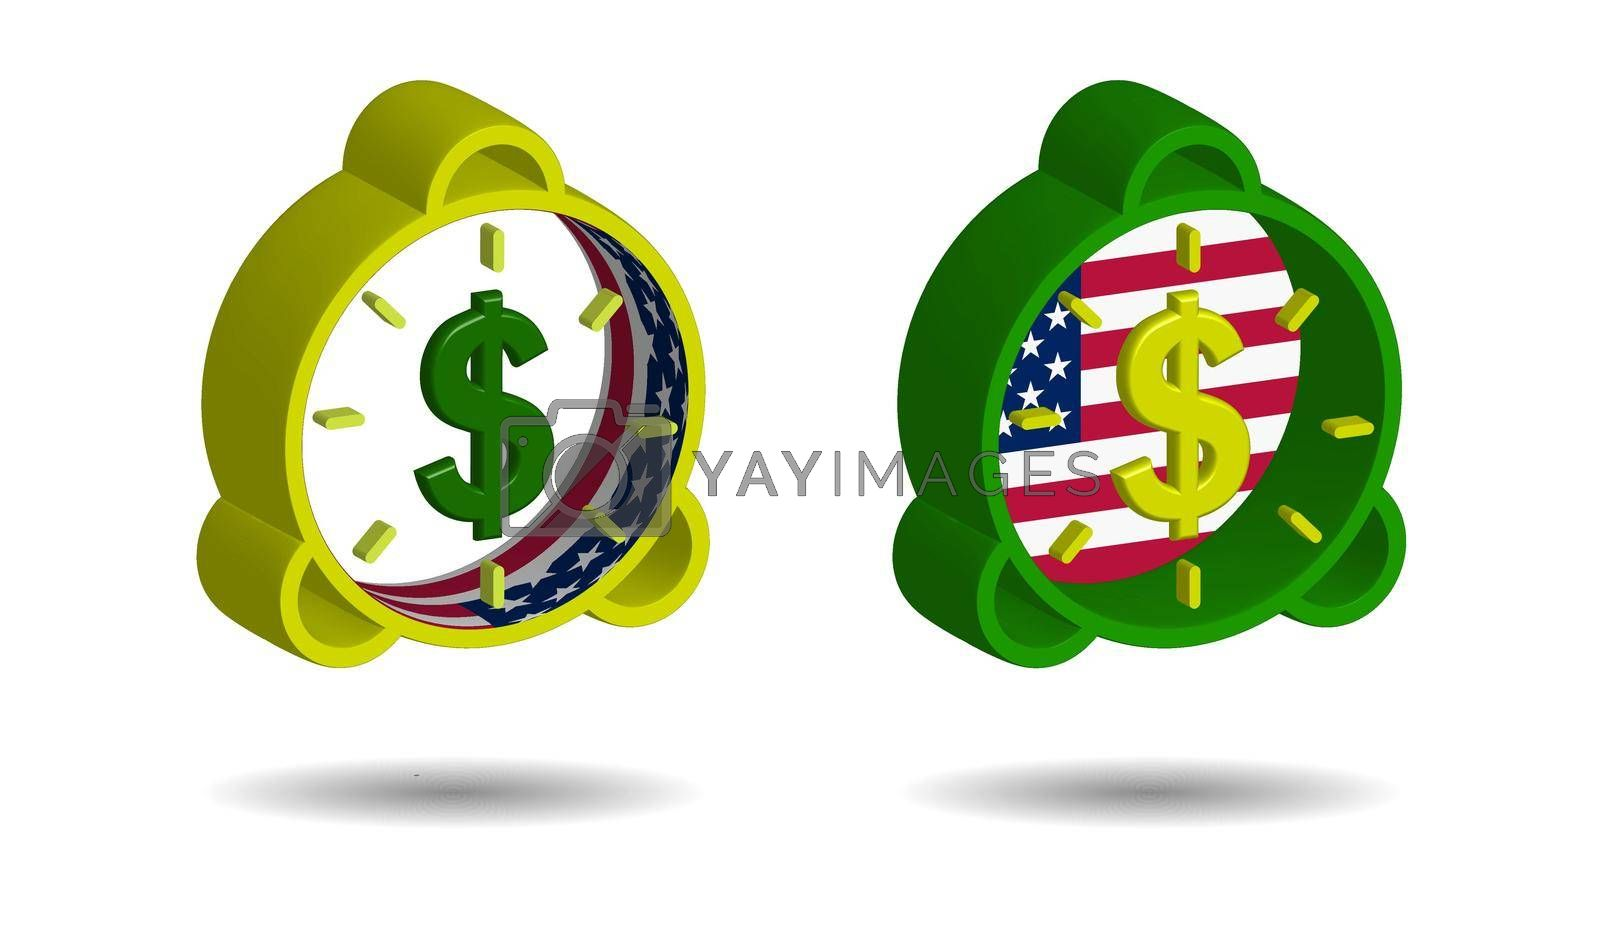 set of multi-colored alarm clocks in 3D style with us dollar sign and american flag elements on a transparent background